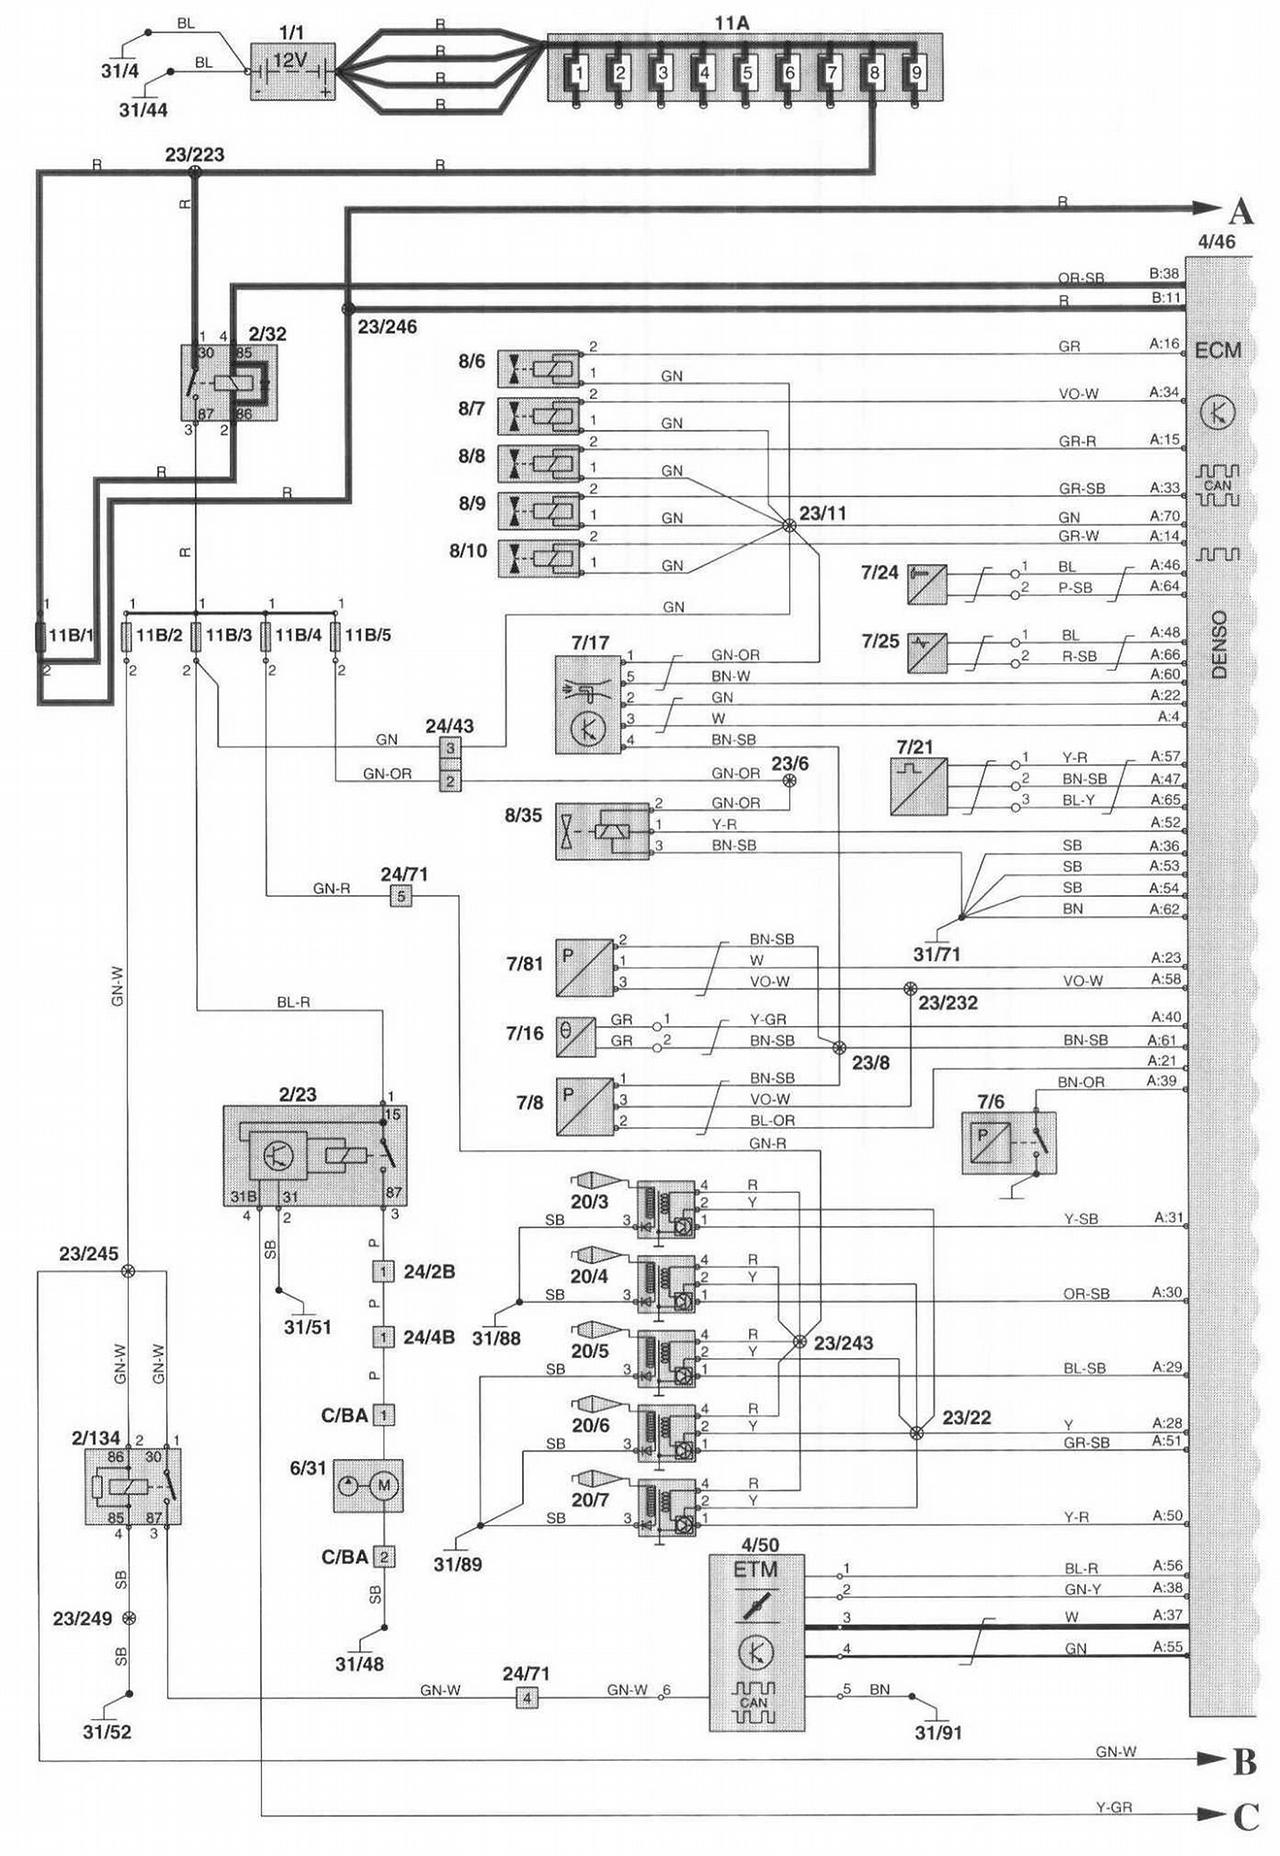 Wiring Diagram Volvo S60